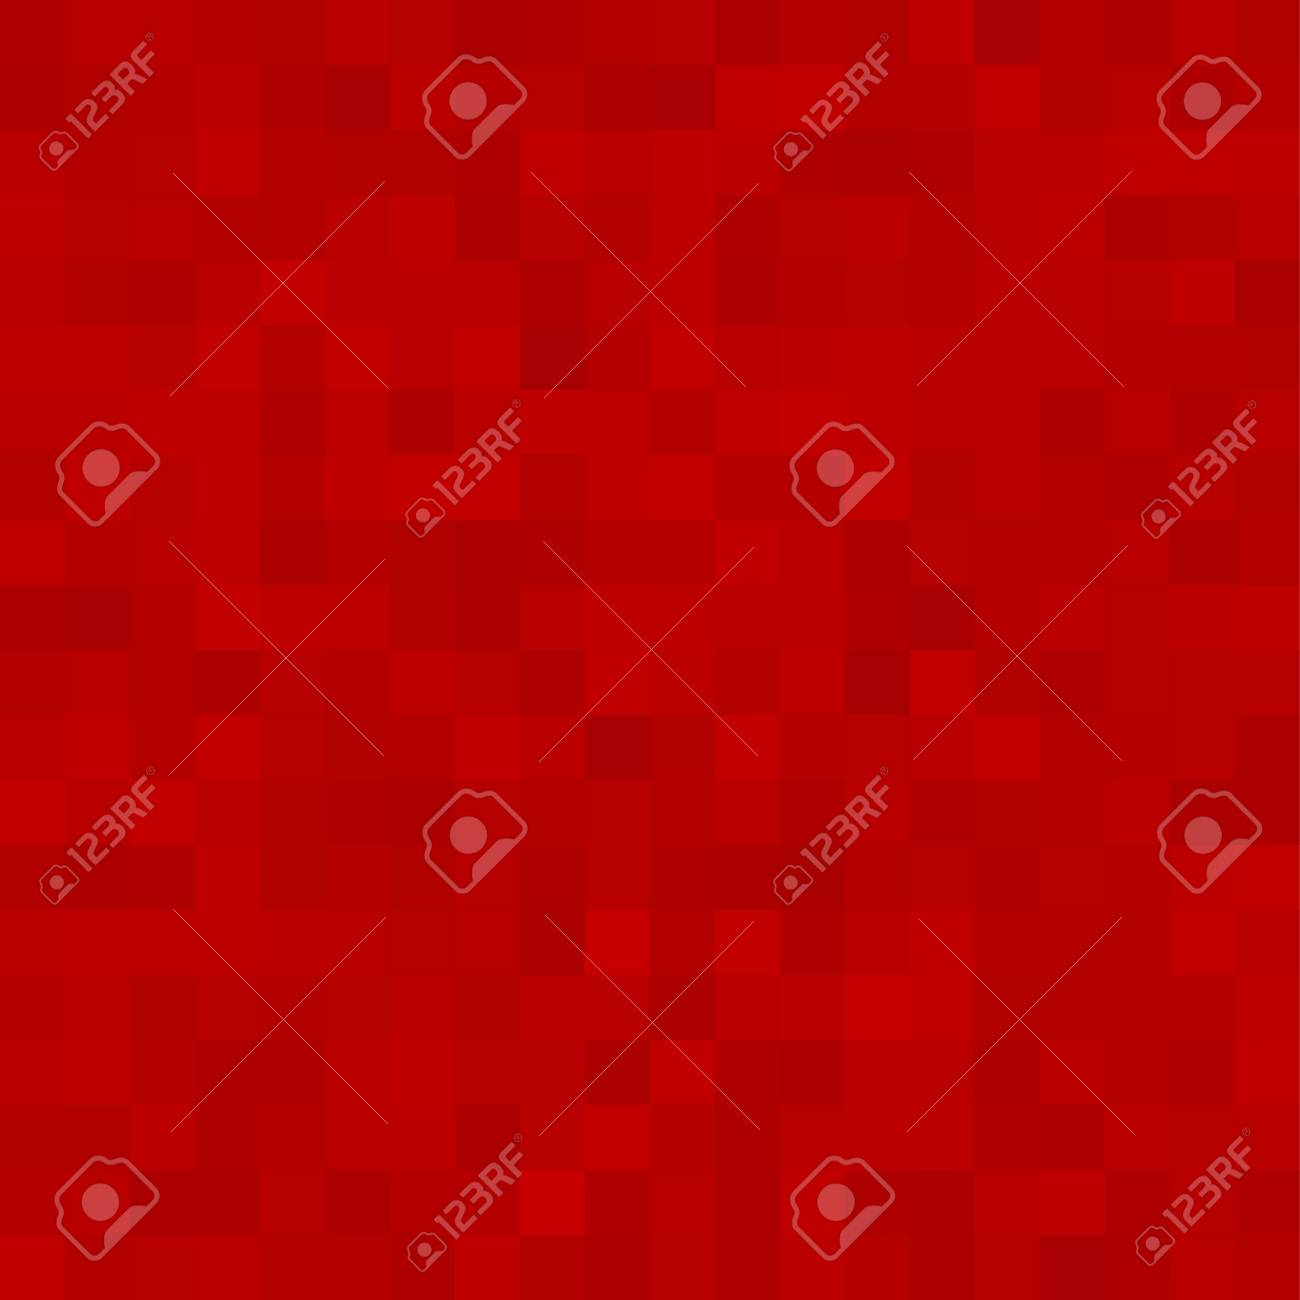 Red Square Mosaic Background. Seamless 3D Pixel Mosaic. Vintage Colorful Texture. Vector illustration. - 125462094